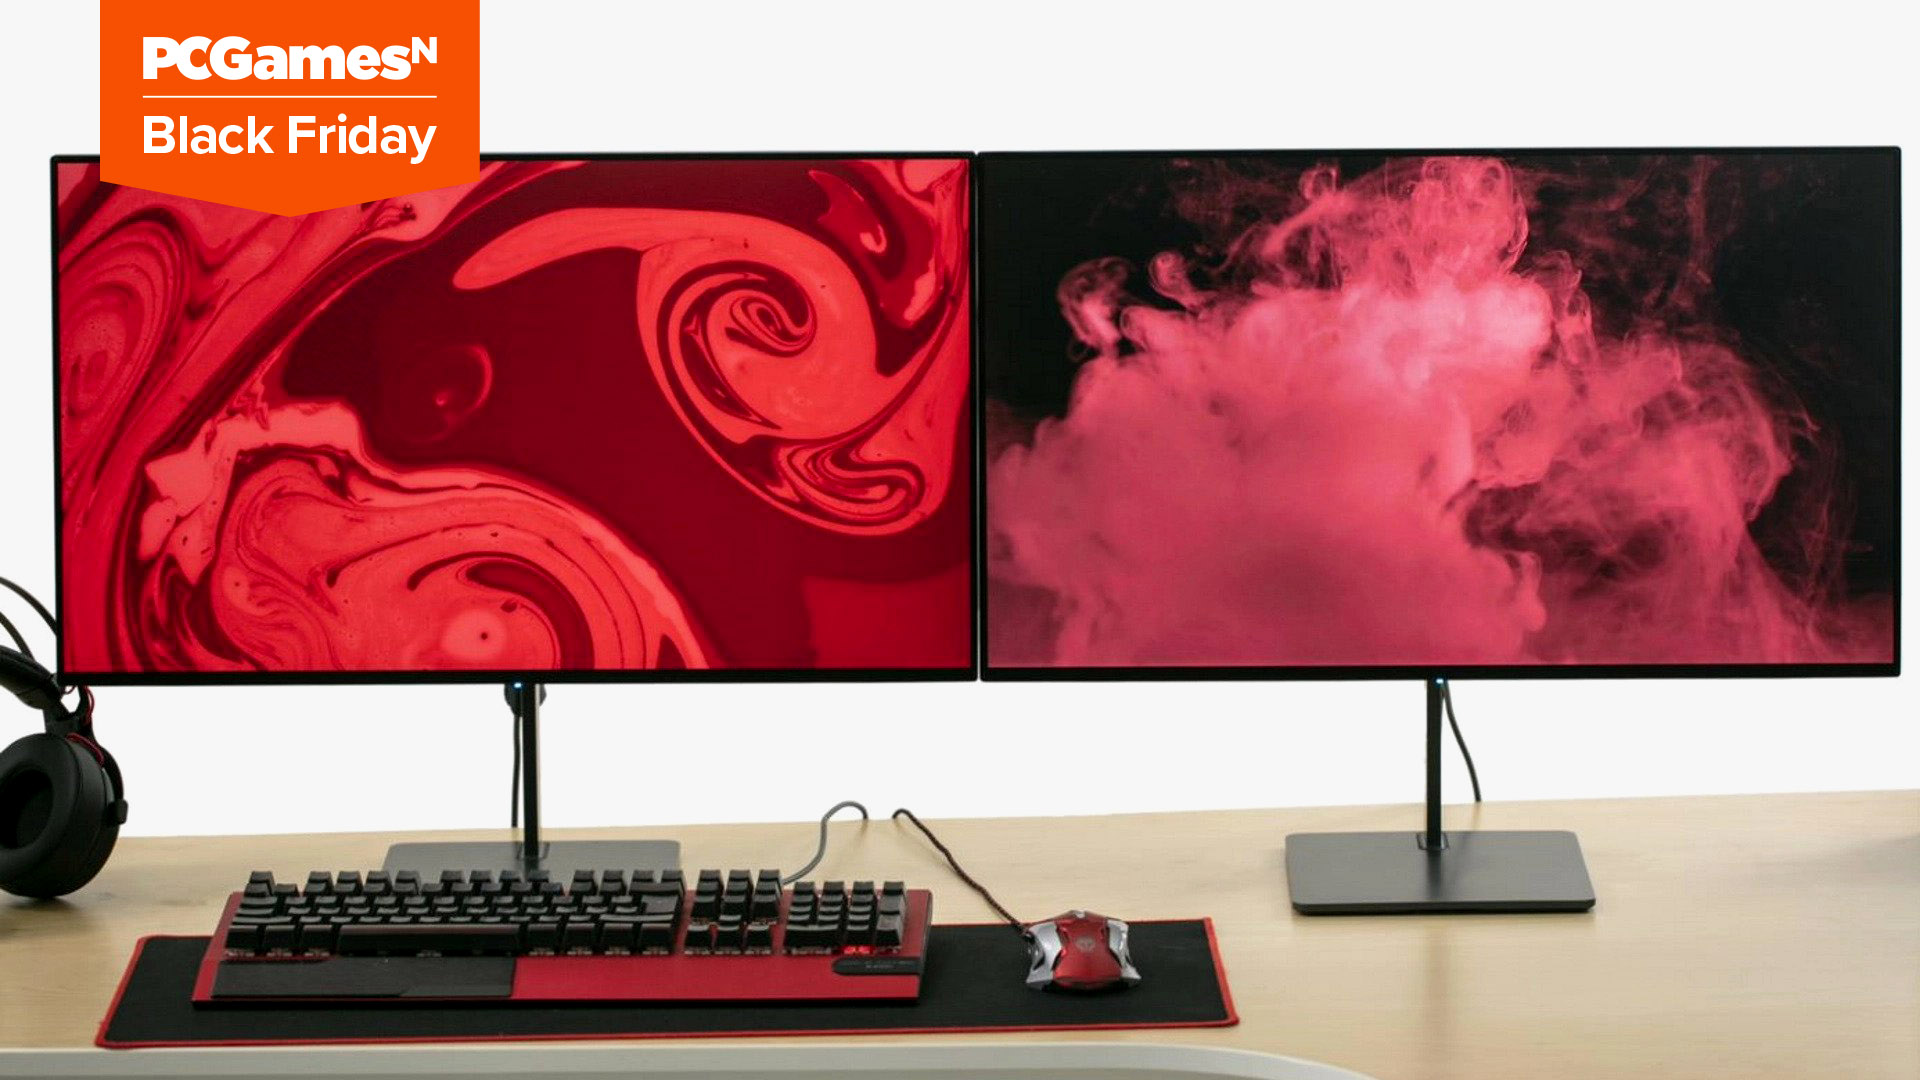 Best gaming monitor deals before Black Friday